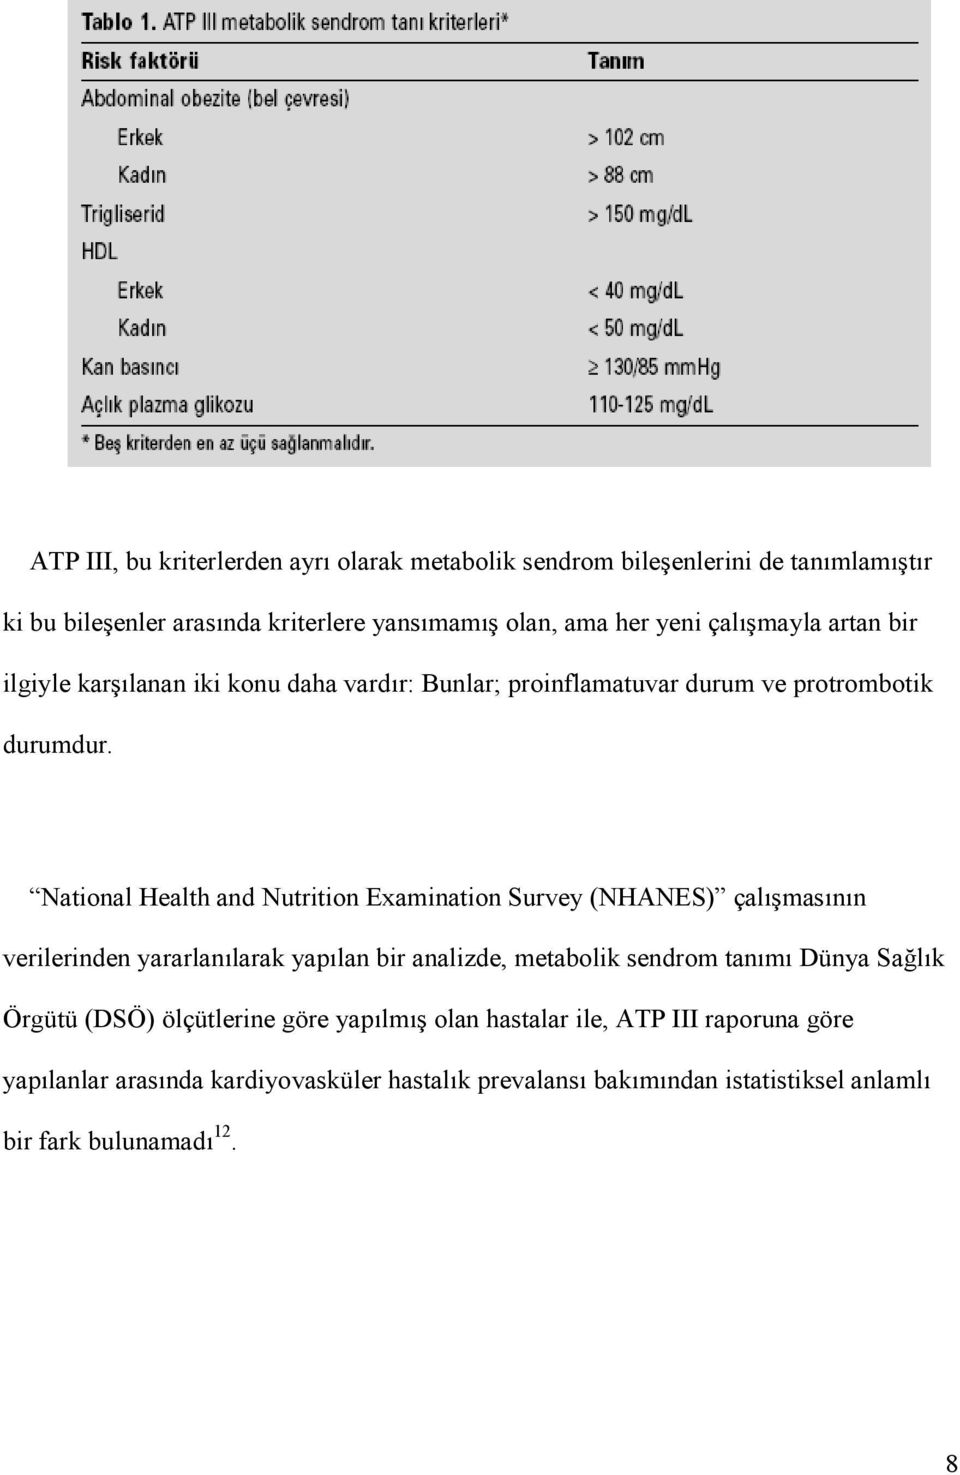 National Health and Nutrition Examination Survey (NHANES) çal mas n n verilerinden yararlan larak yap lan bir analizde, metabolik sendrom tan m Dünya